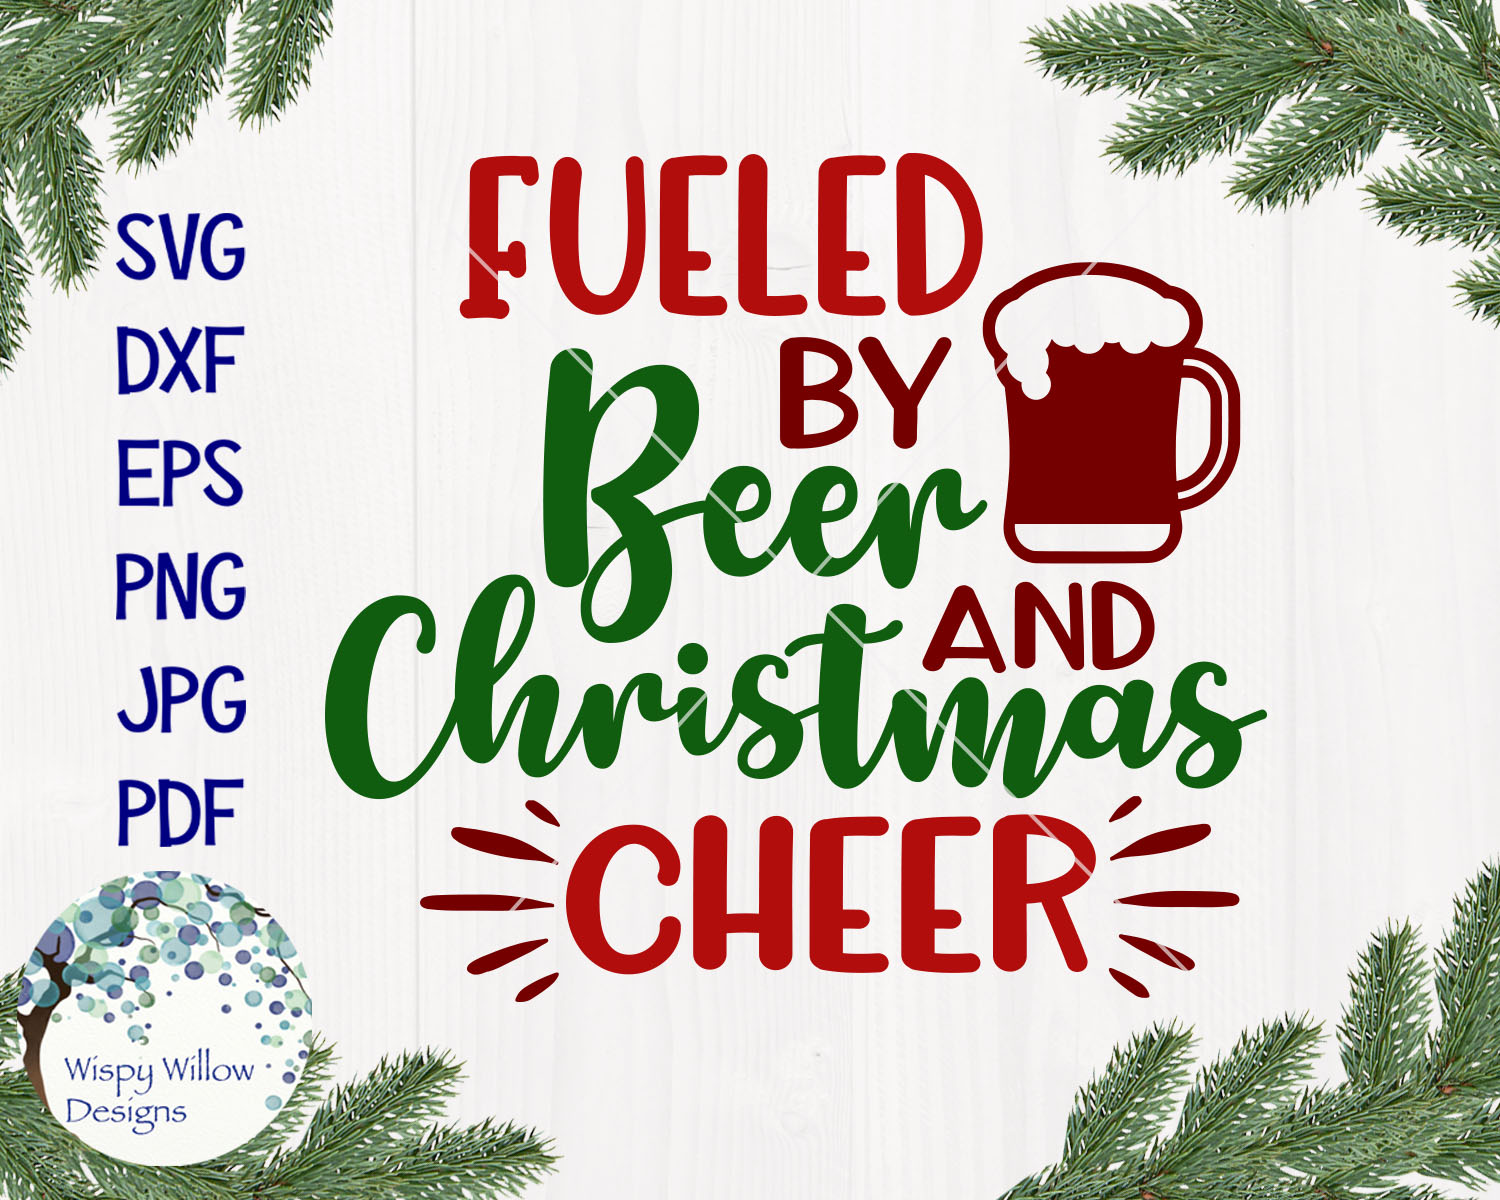 Fueled By Christmas Cheer | Christmas SVG Bundle example image 9